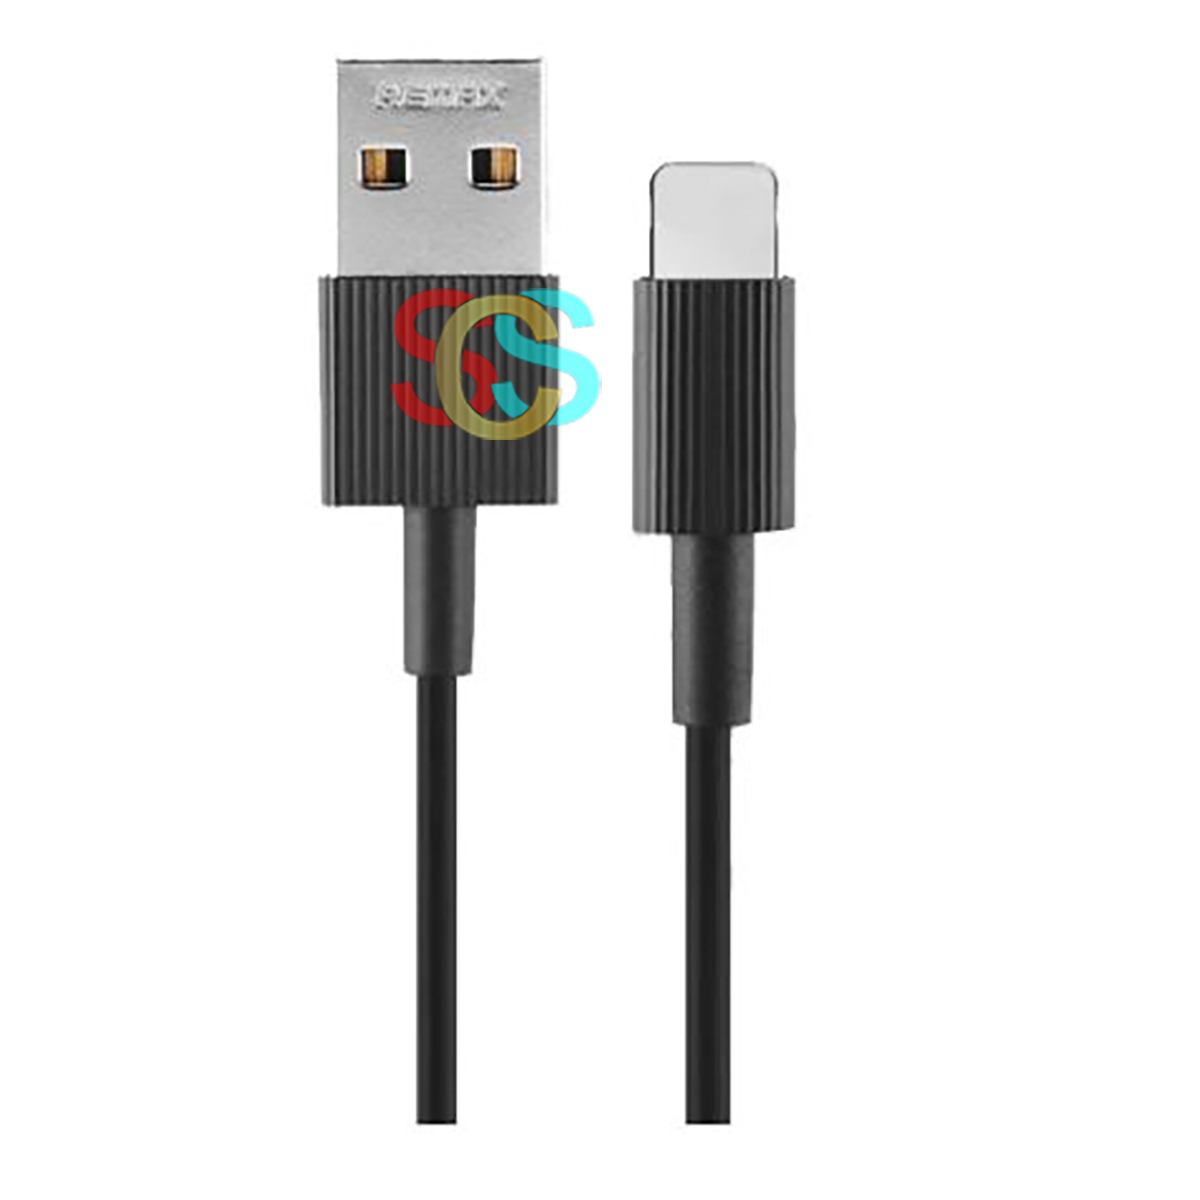 Remax USB Male to Lightning, 1 Meter, Black Charging & Data Cable